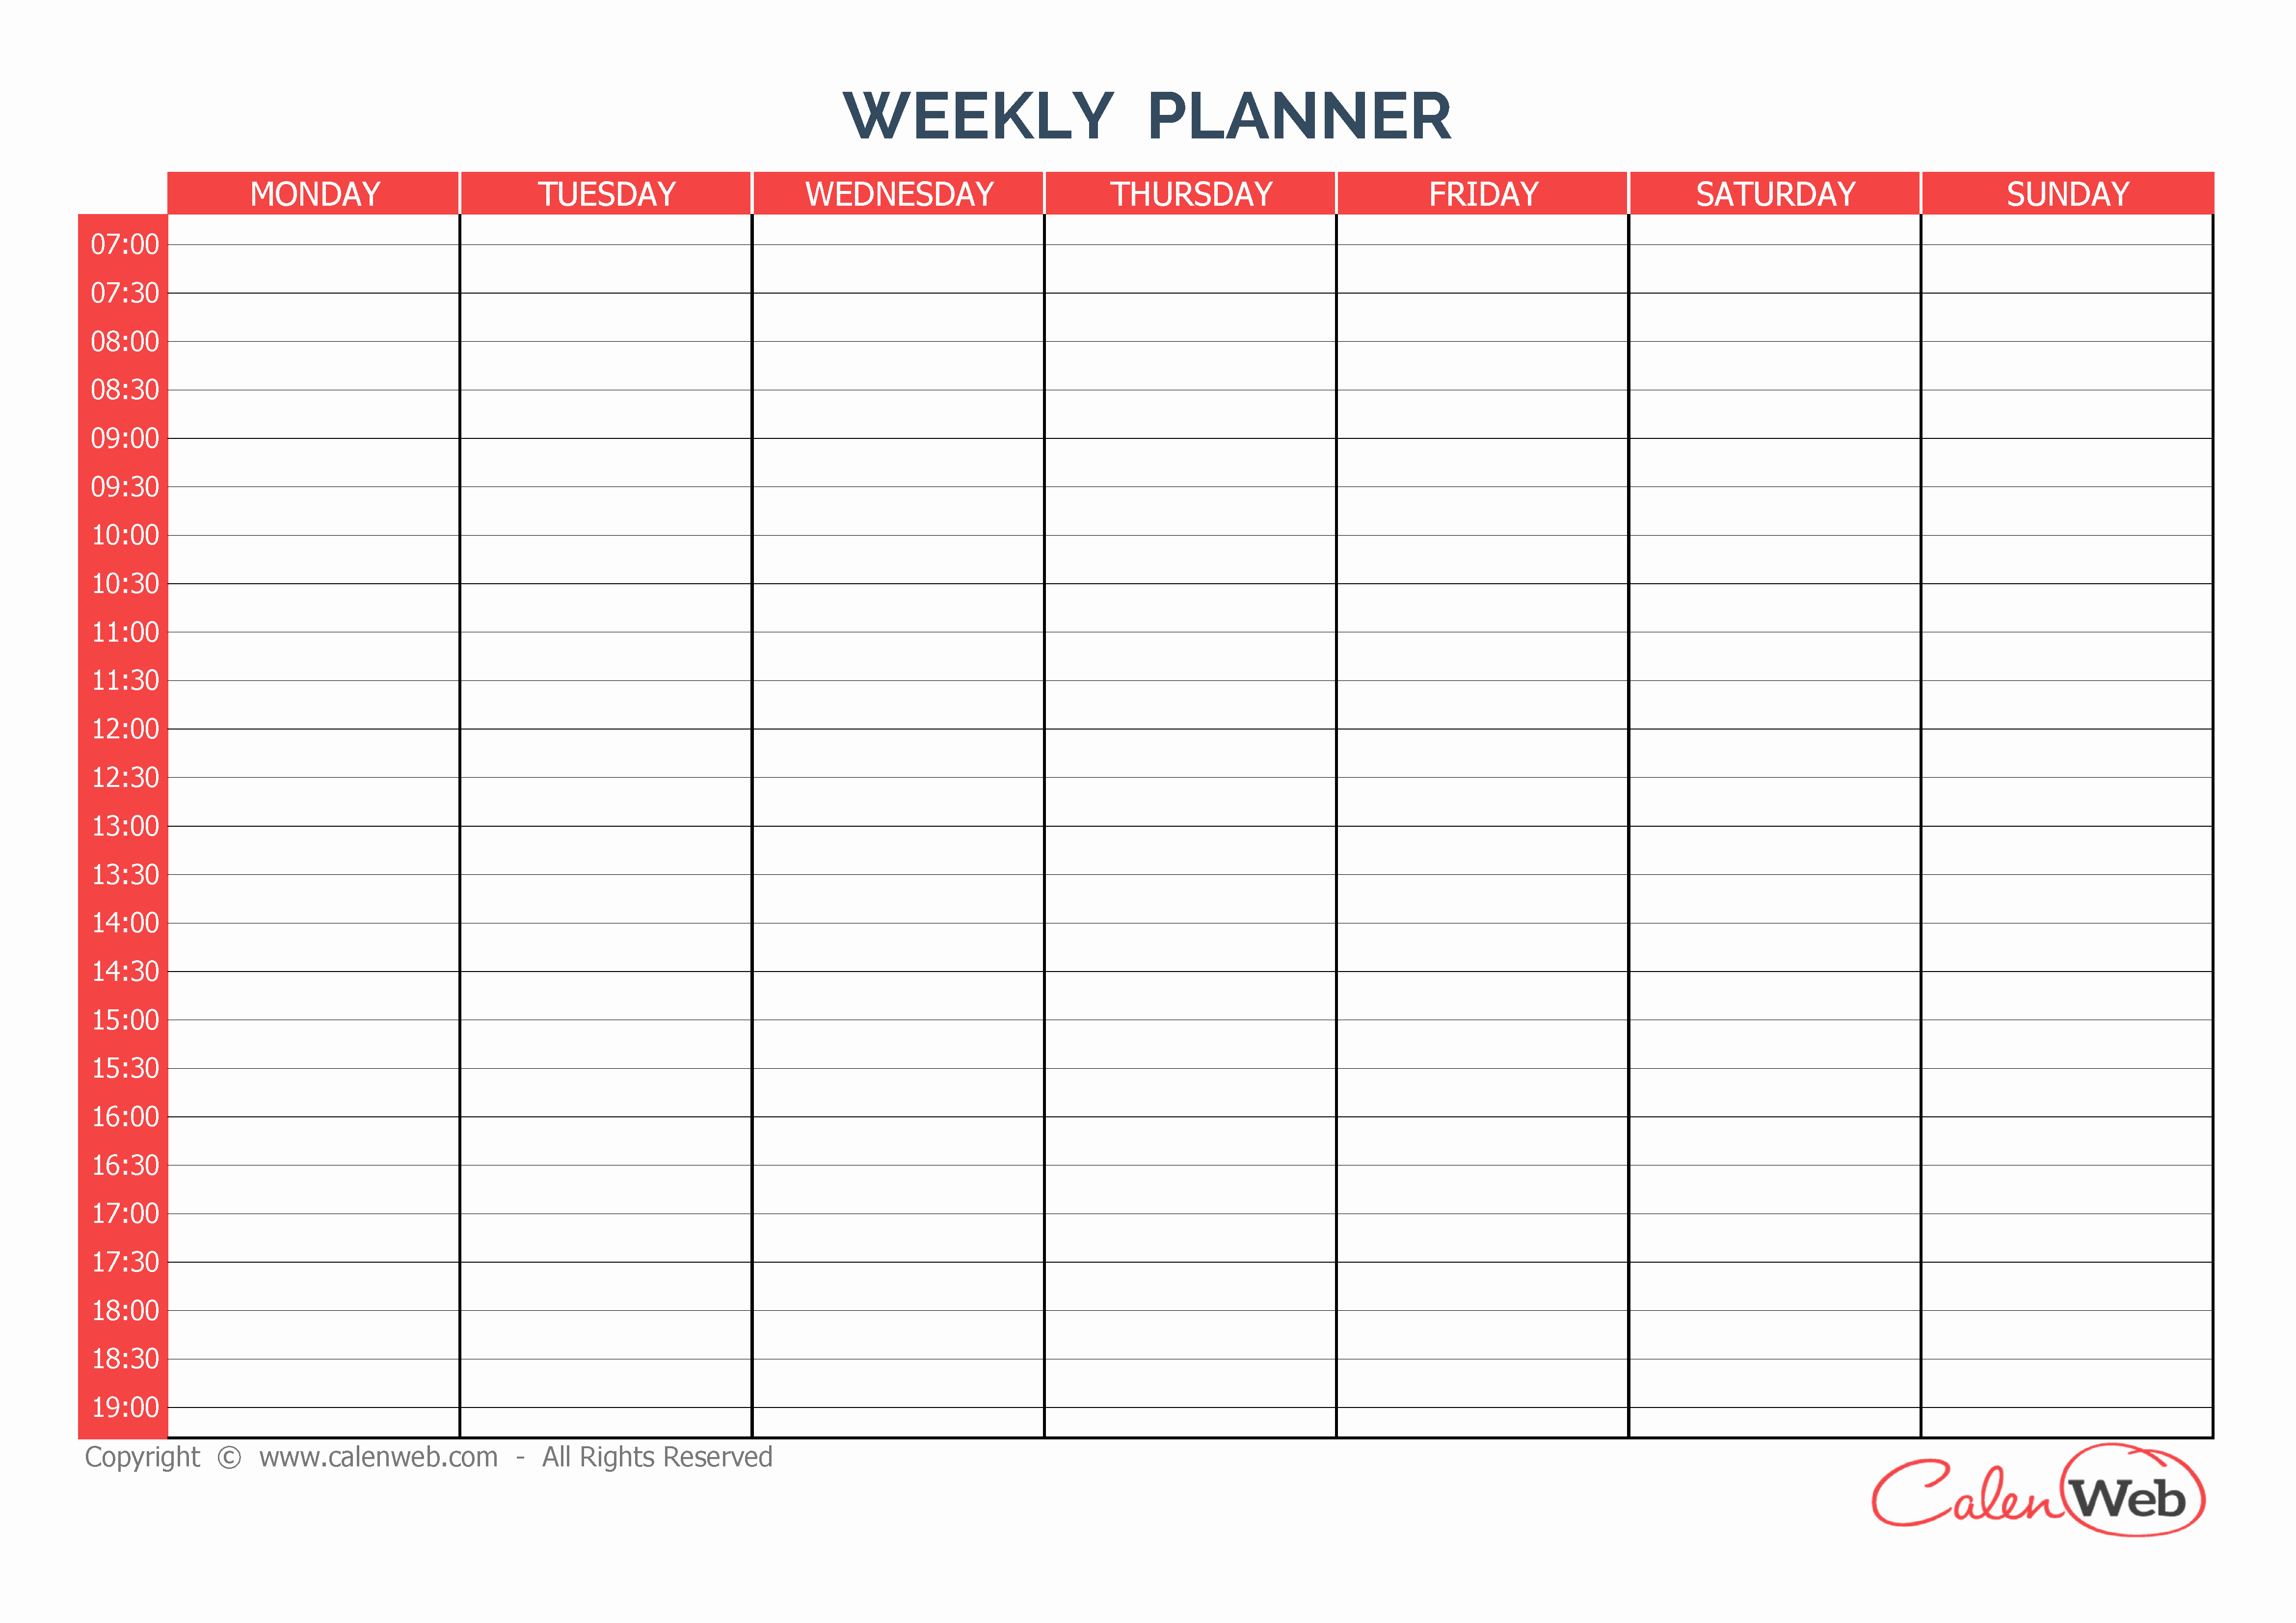 5 Day Weekly Calendar Template New Weekly Calendar Planner